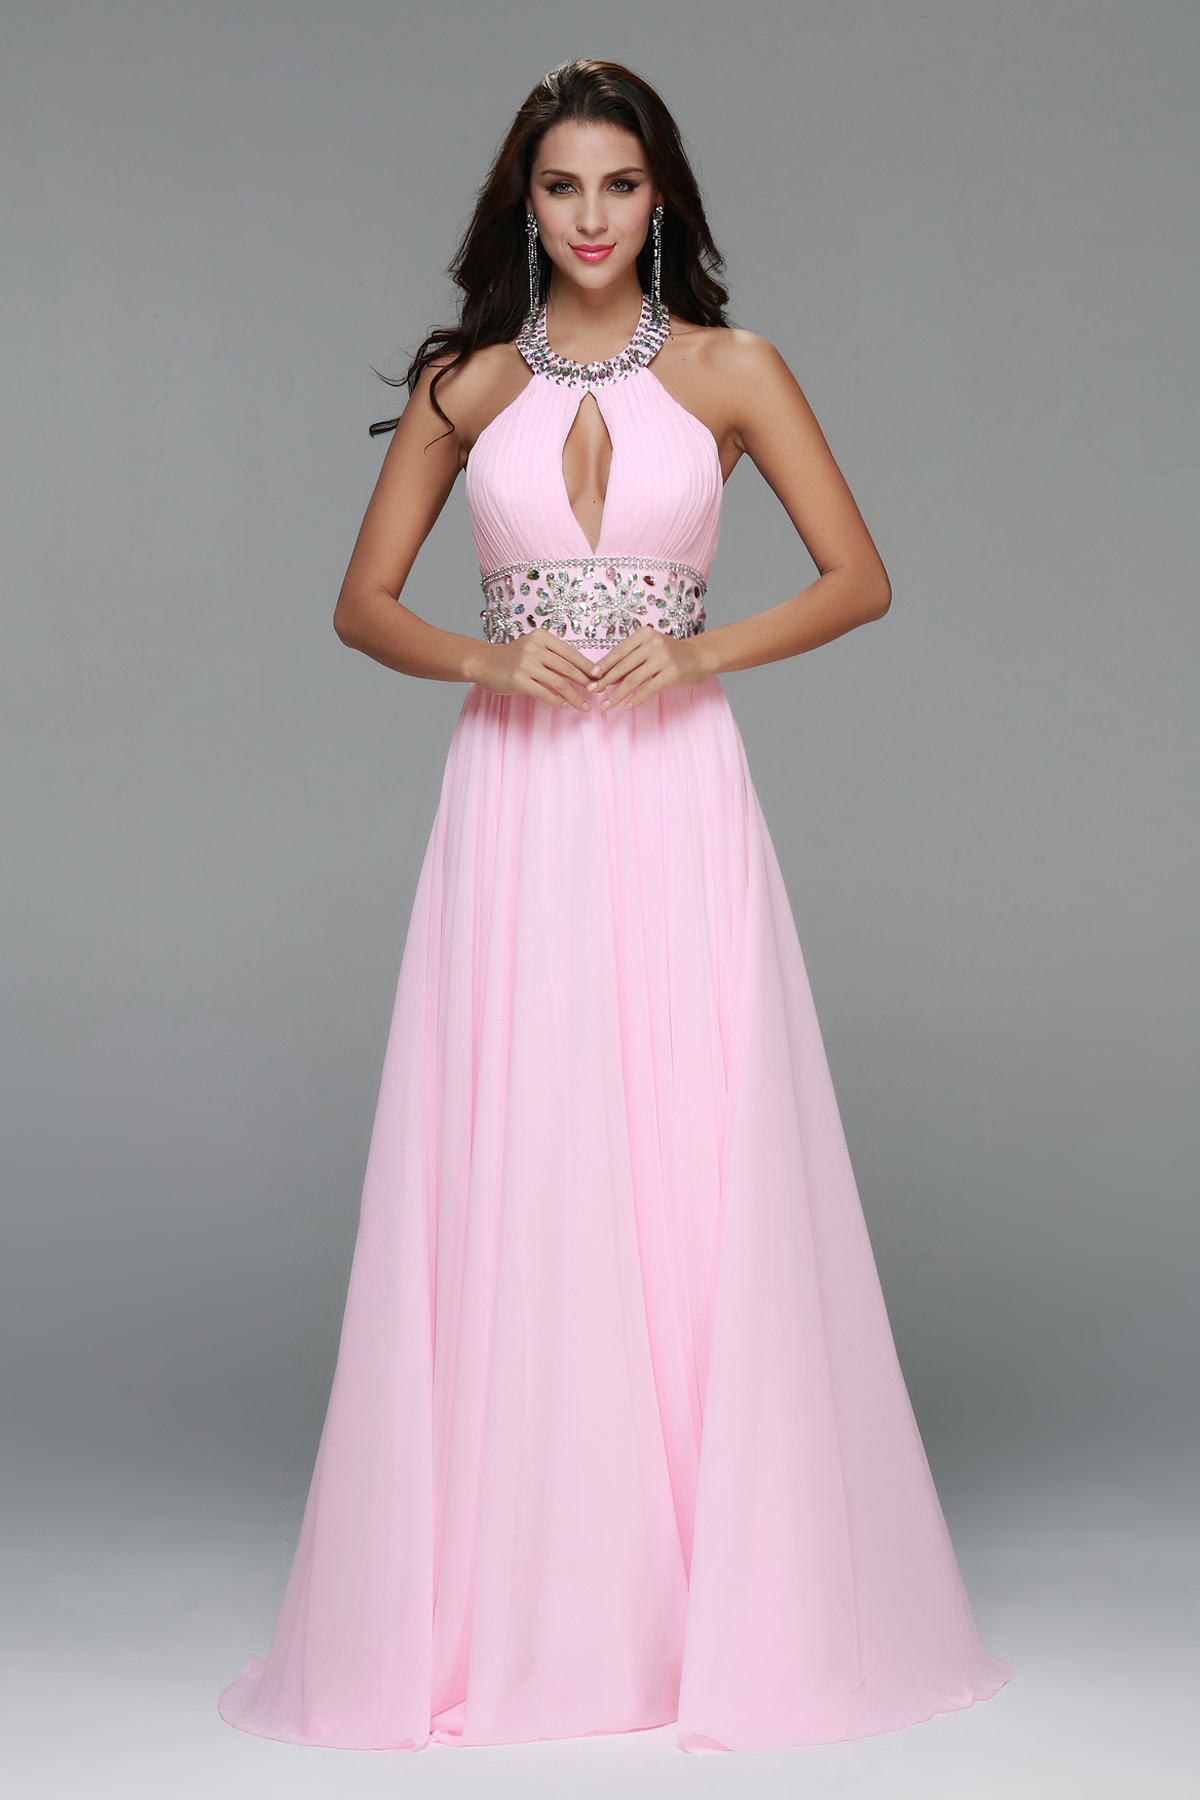 Pink Halter Neck Long Chiffon Junior Prom Dress with Beading